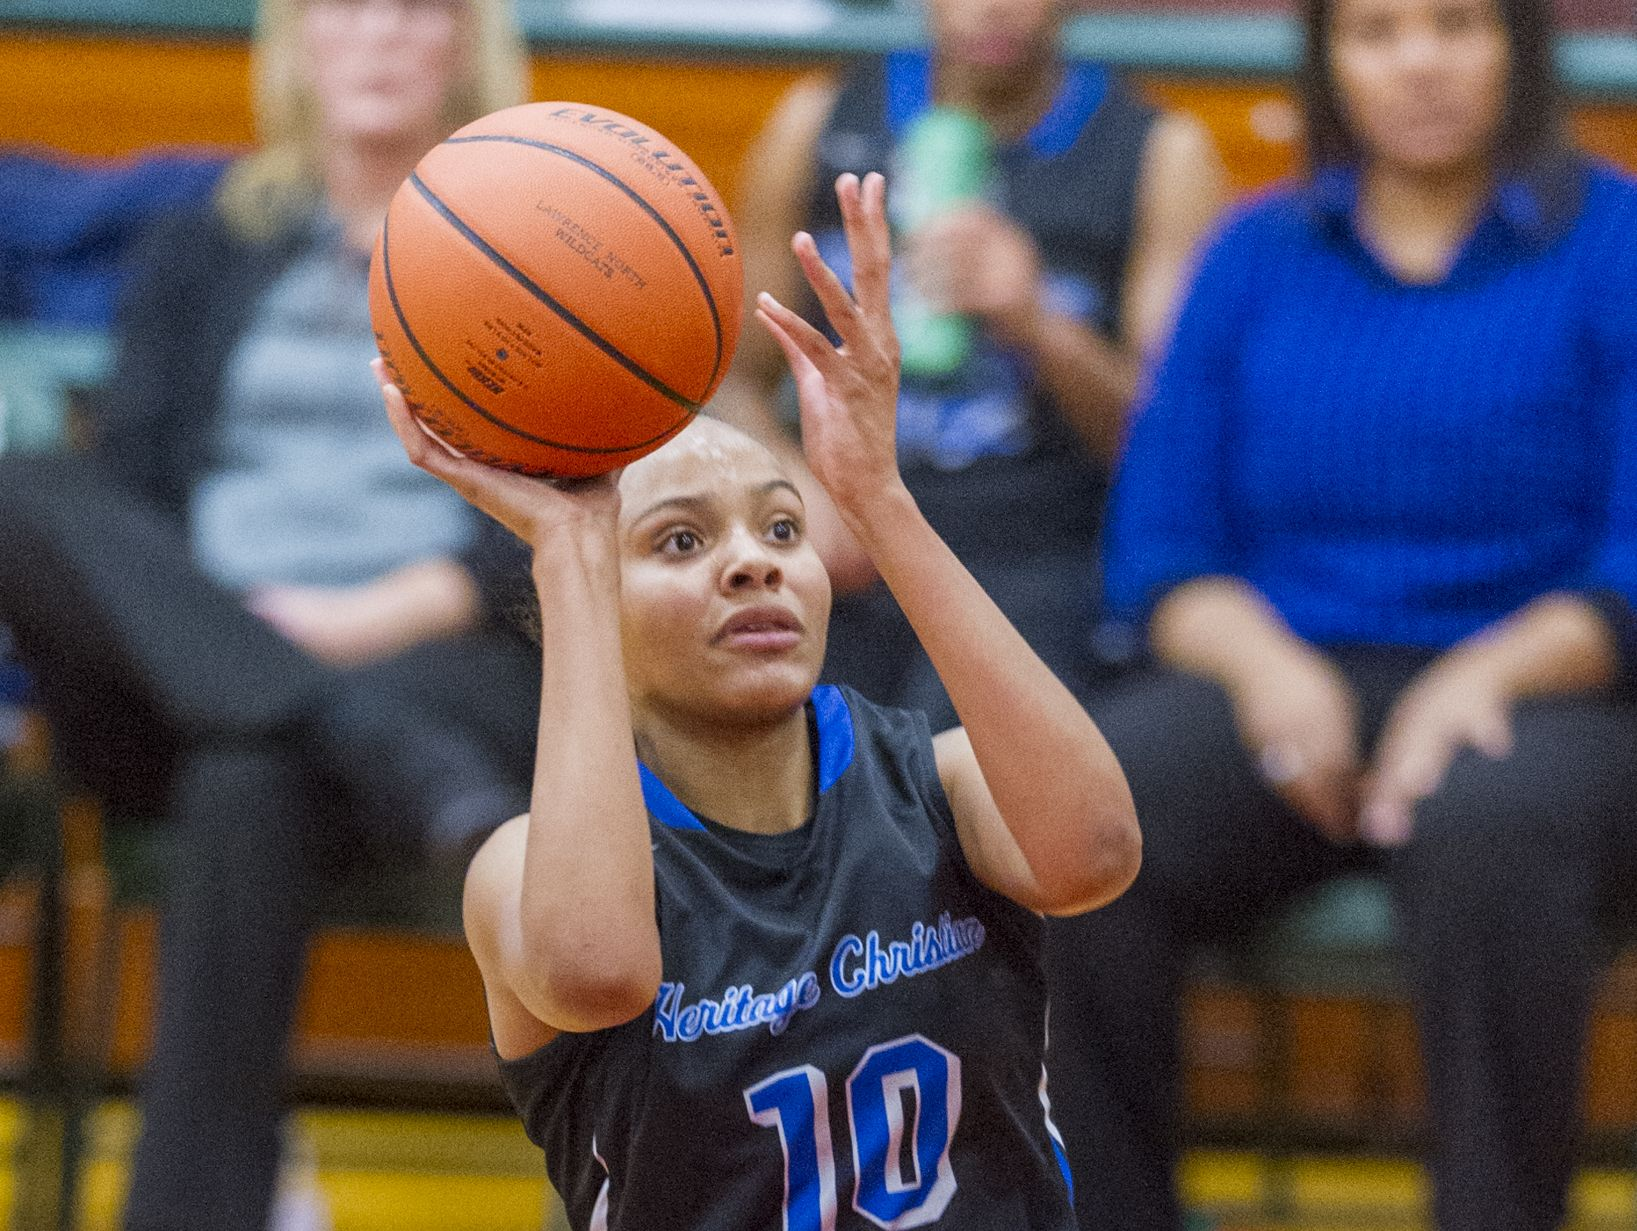 Heritage Christian's Katlyn Gilbert is one of the top players statewide in Class 3A.